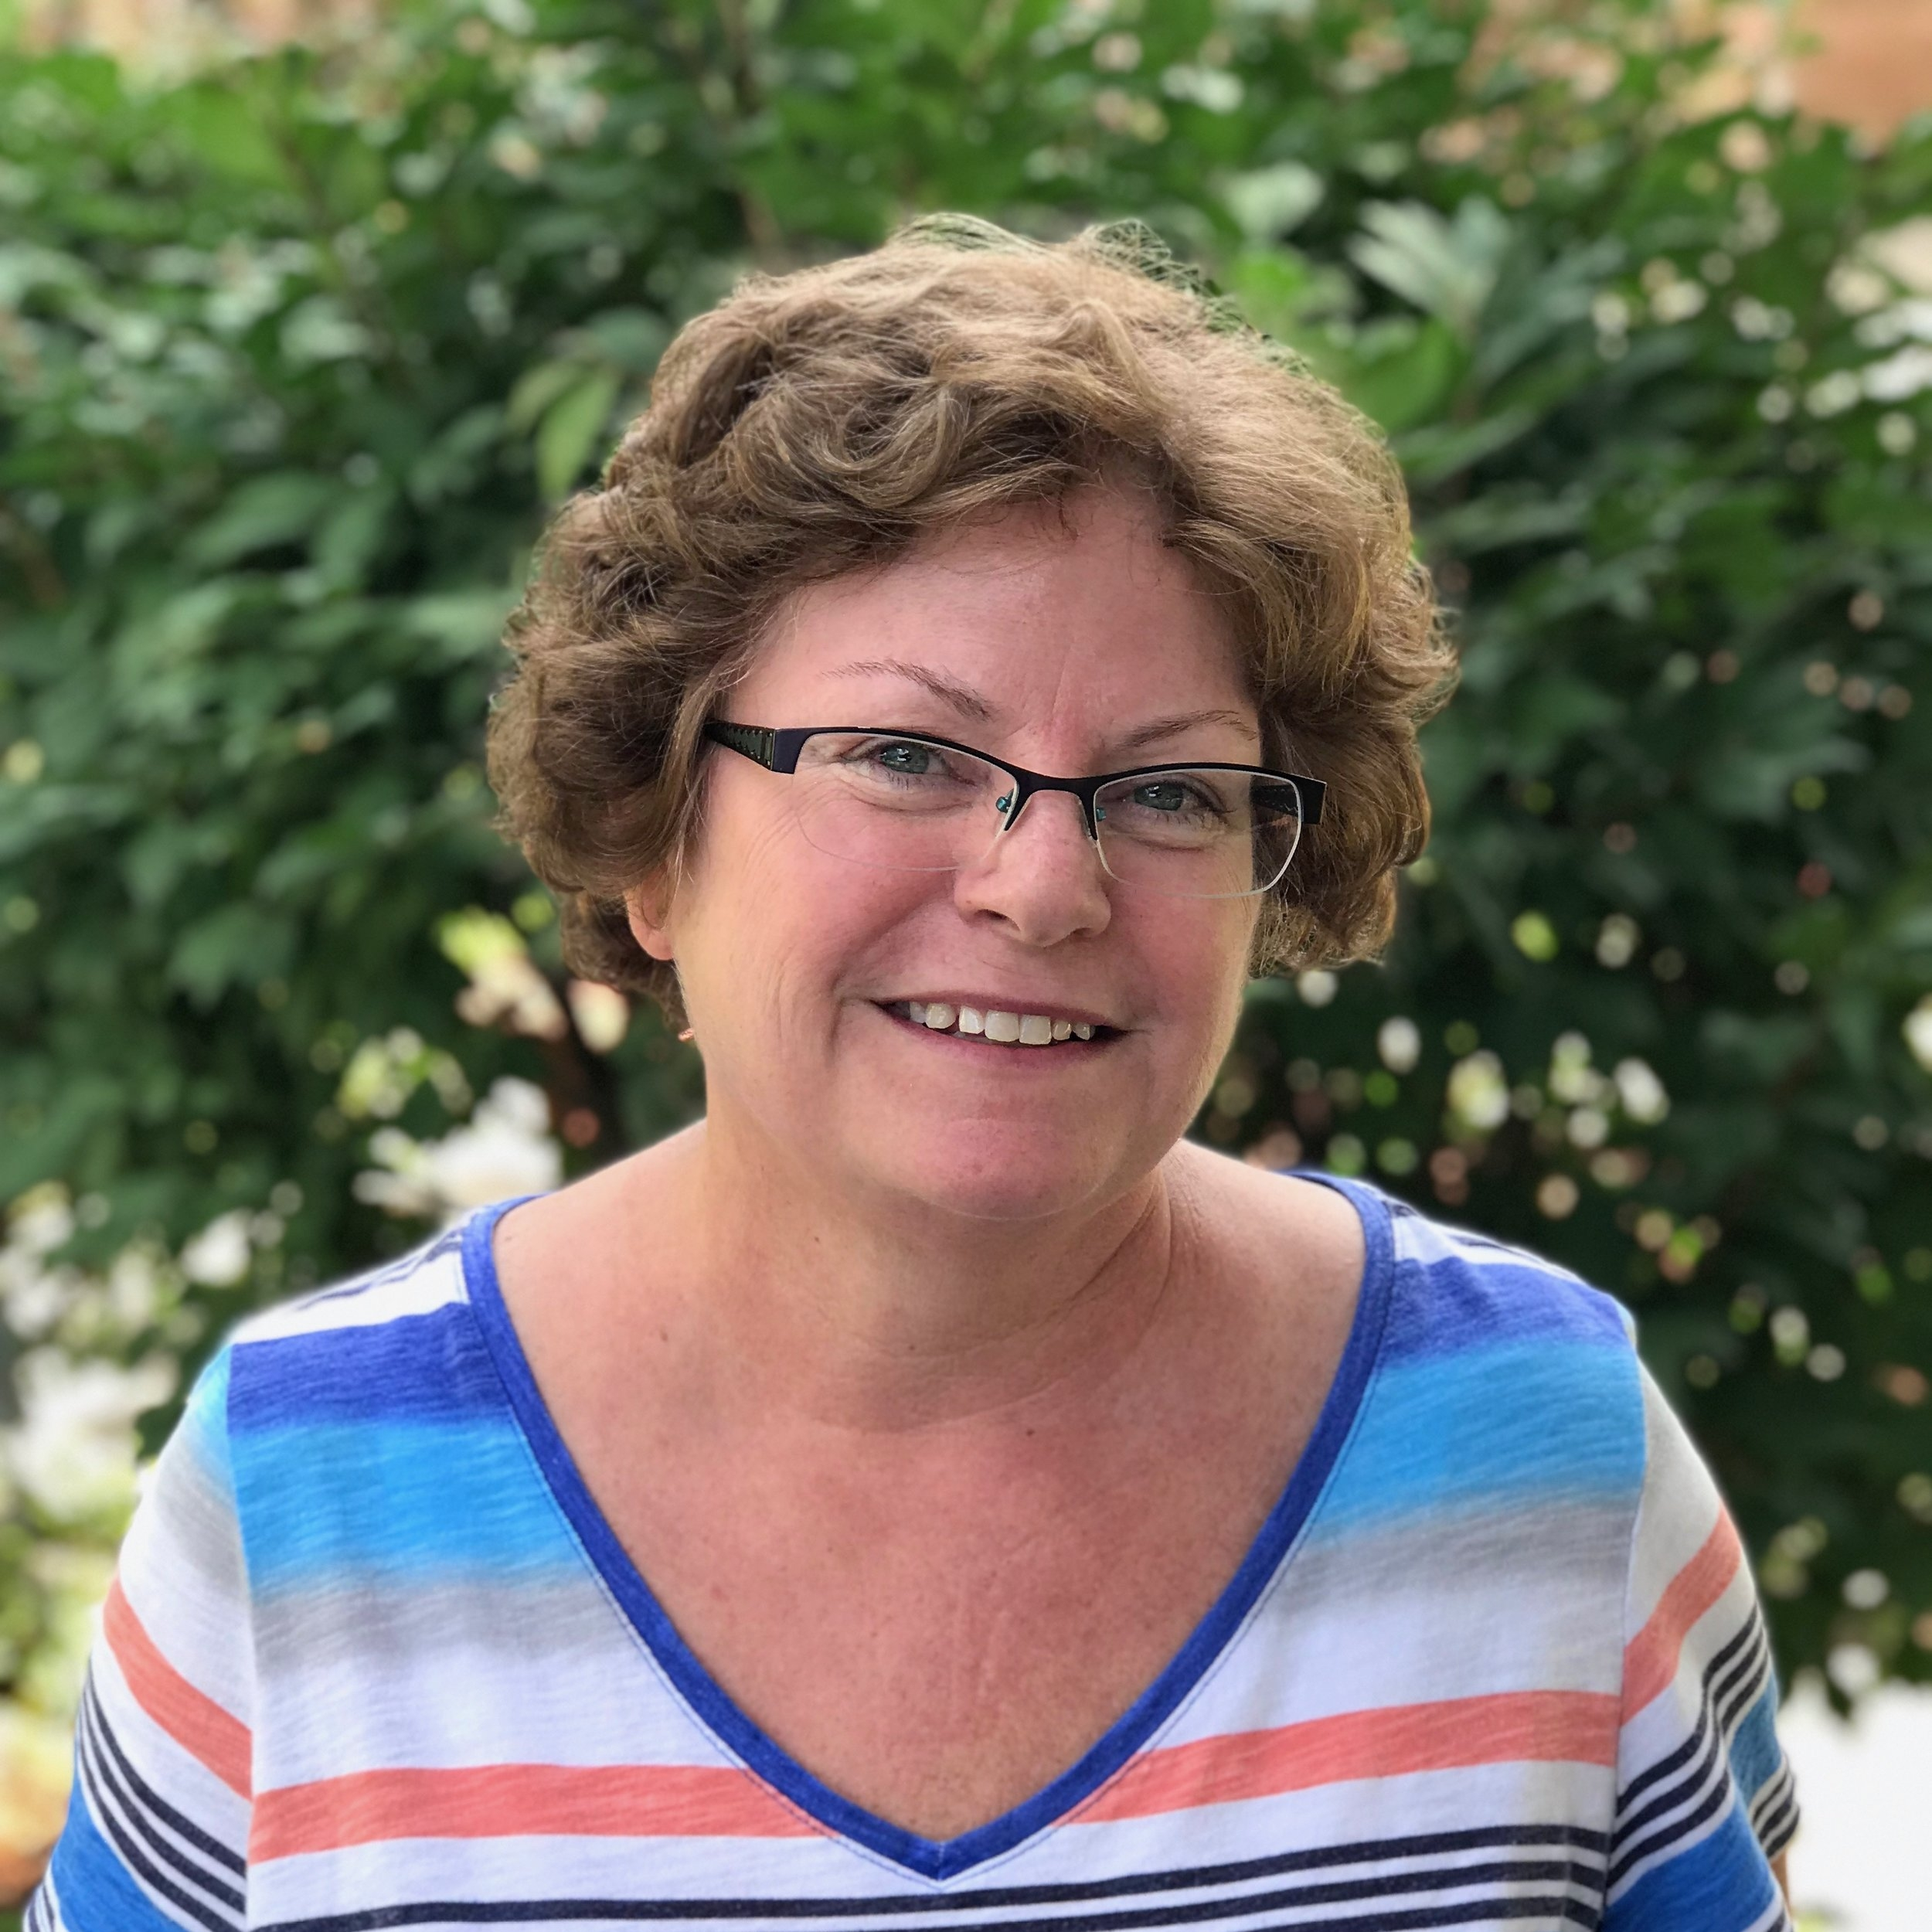 Mrs. Ruth Giefer -5th Grade Teacher  I'm so excited to be the 5th grade classroom teacher this year. This is my 5th year here at St. Jerome. I have been teaching for 20 years in a variety of grades in Minnesota including 10 years in Southern California. I also served as assistant principal for 5 years at St. Hyacinth Academy in San Jacinto, CA. I graduated with a B.S. in Elementary Education from the University of Wisconsin, River Falls, and went on to earn my Master's Degree in Reading Instruction and Curriculum Development. I'm looking forward to a great year.